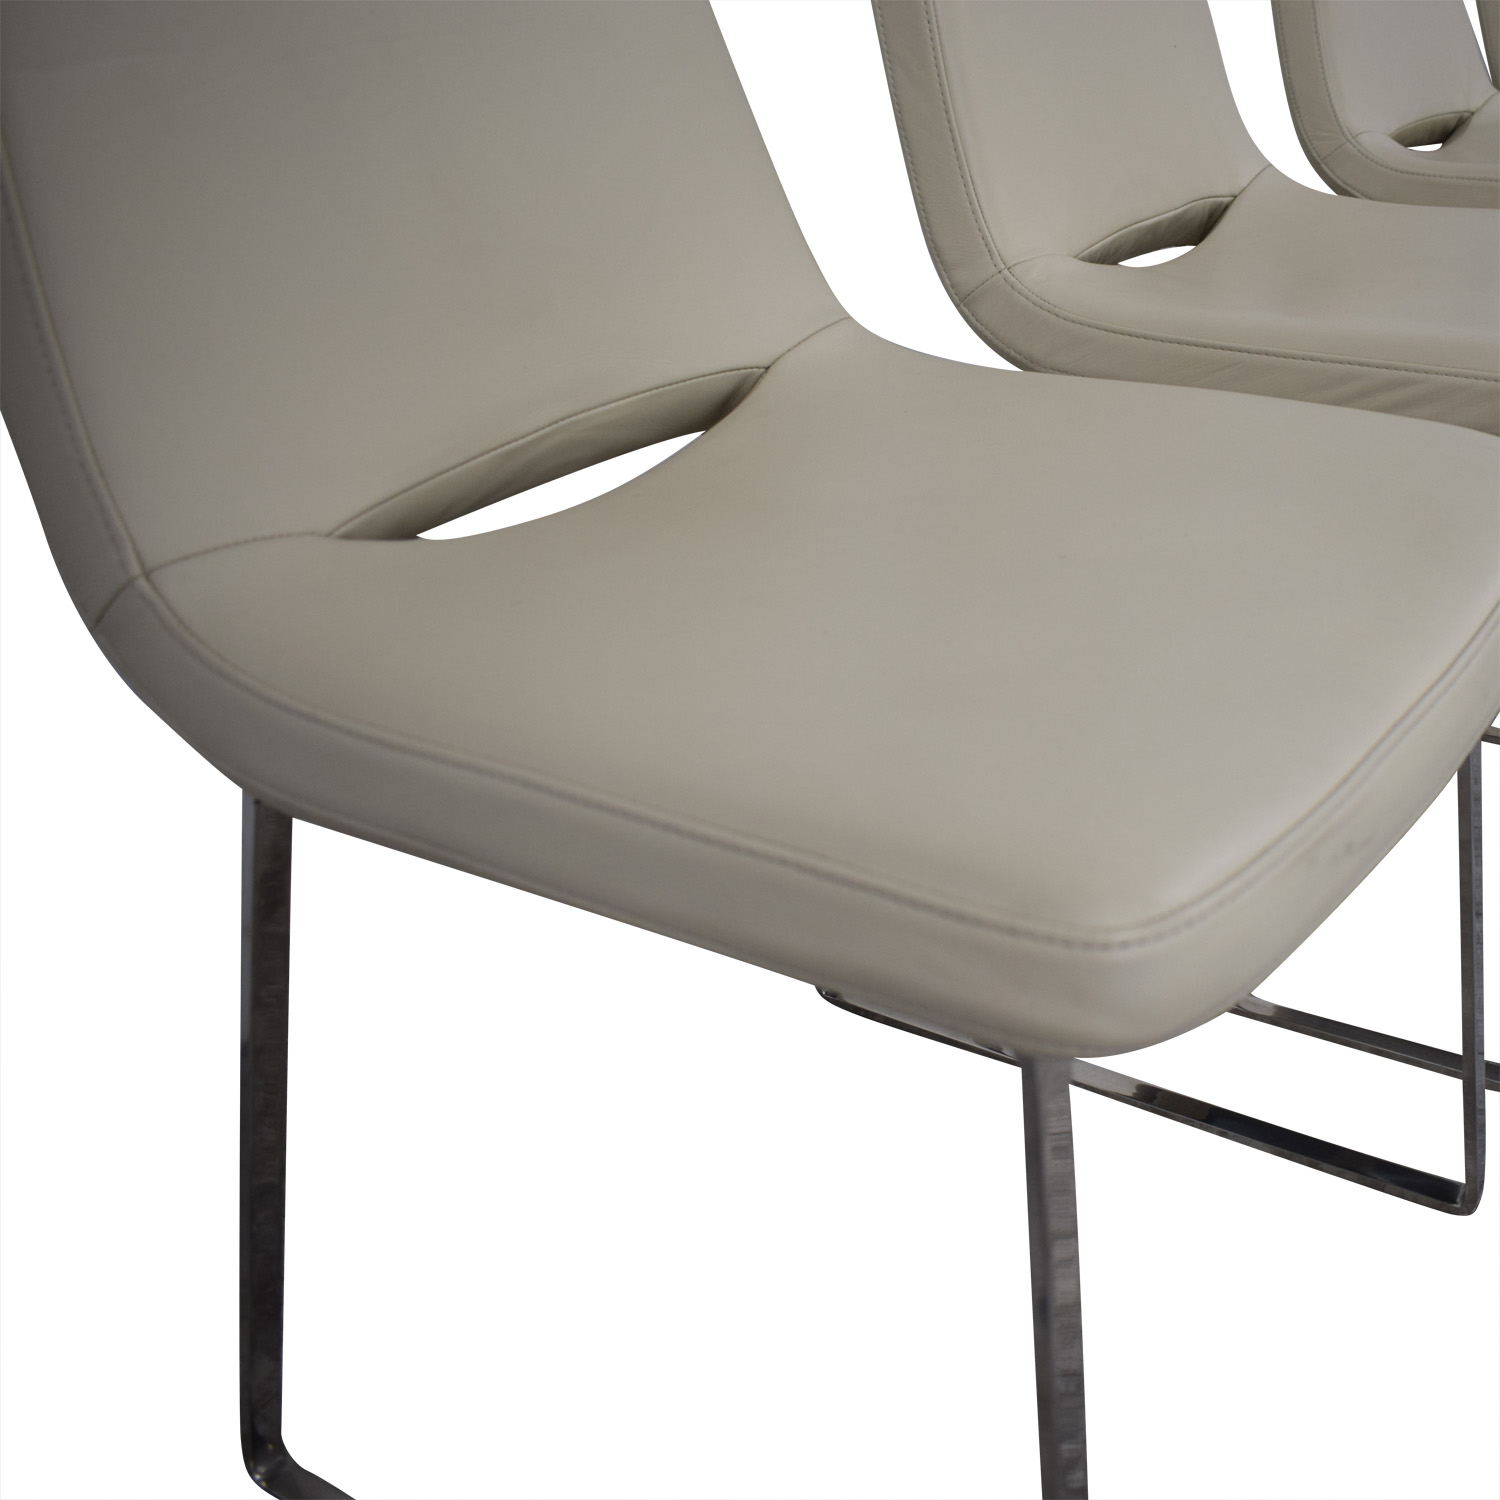 buy Tui Lifestyle Tui Lifestyle Leather Dining Chair Set online